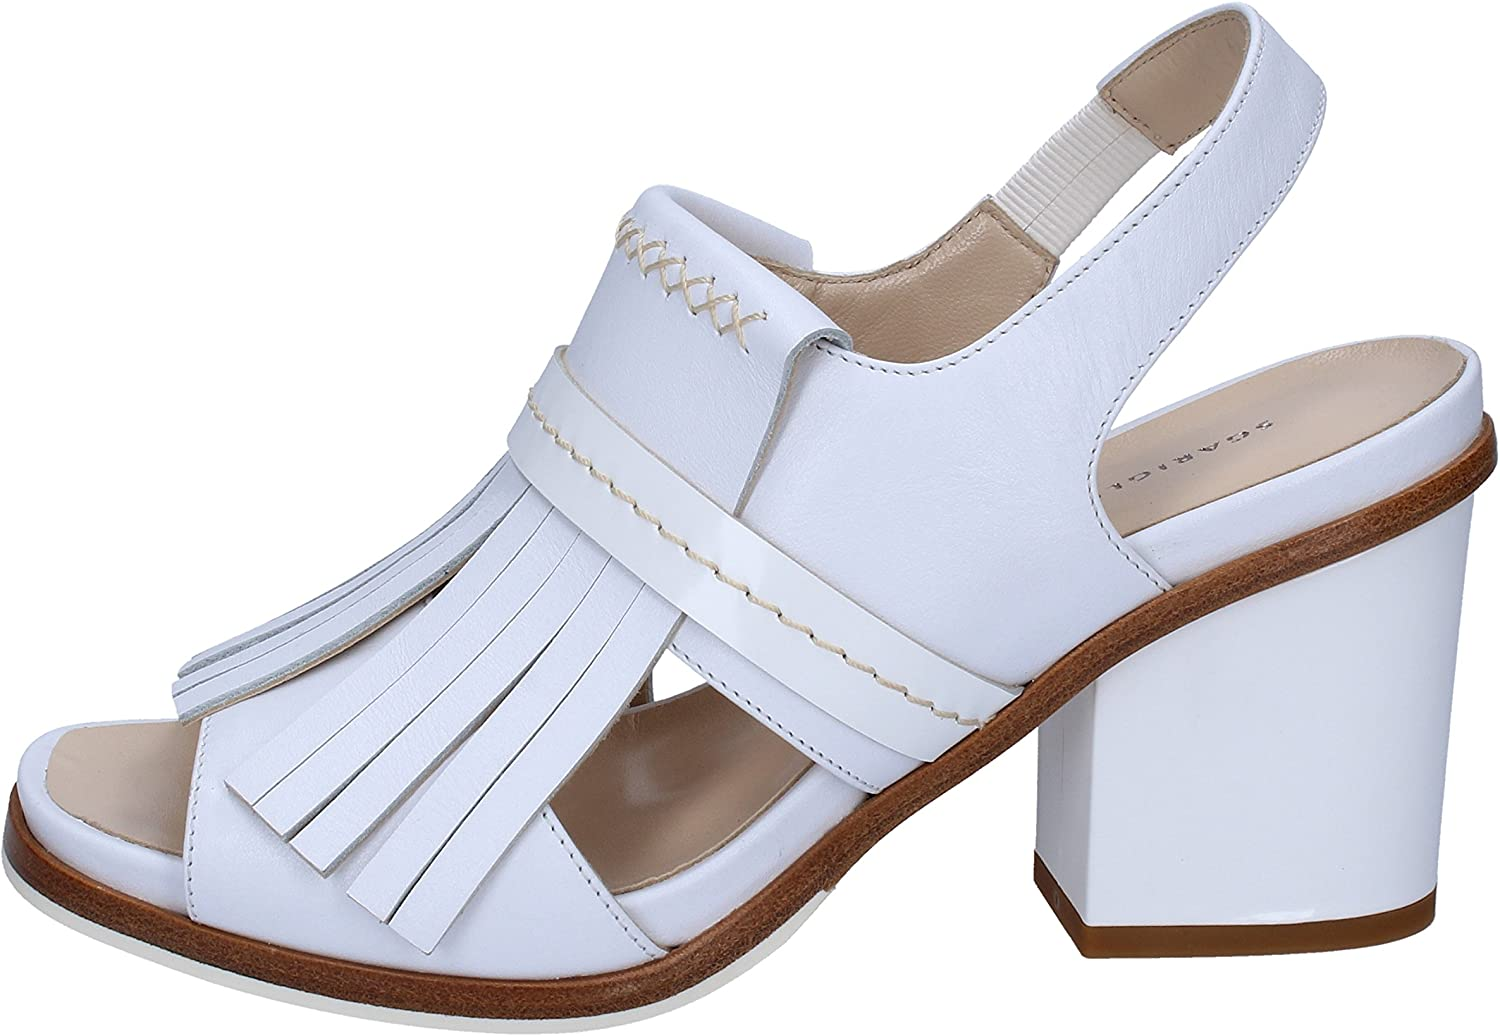 GUIDO SGARIGLIA Sandals Womens Leather White